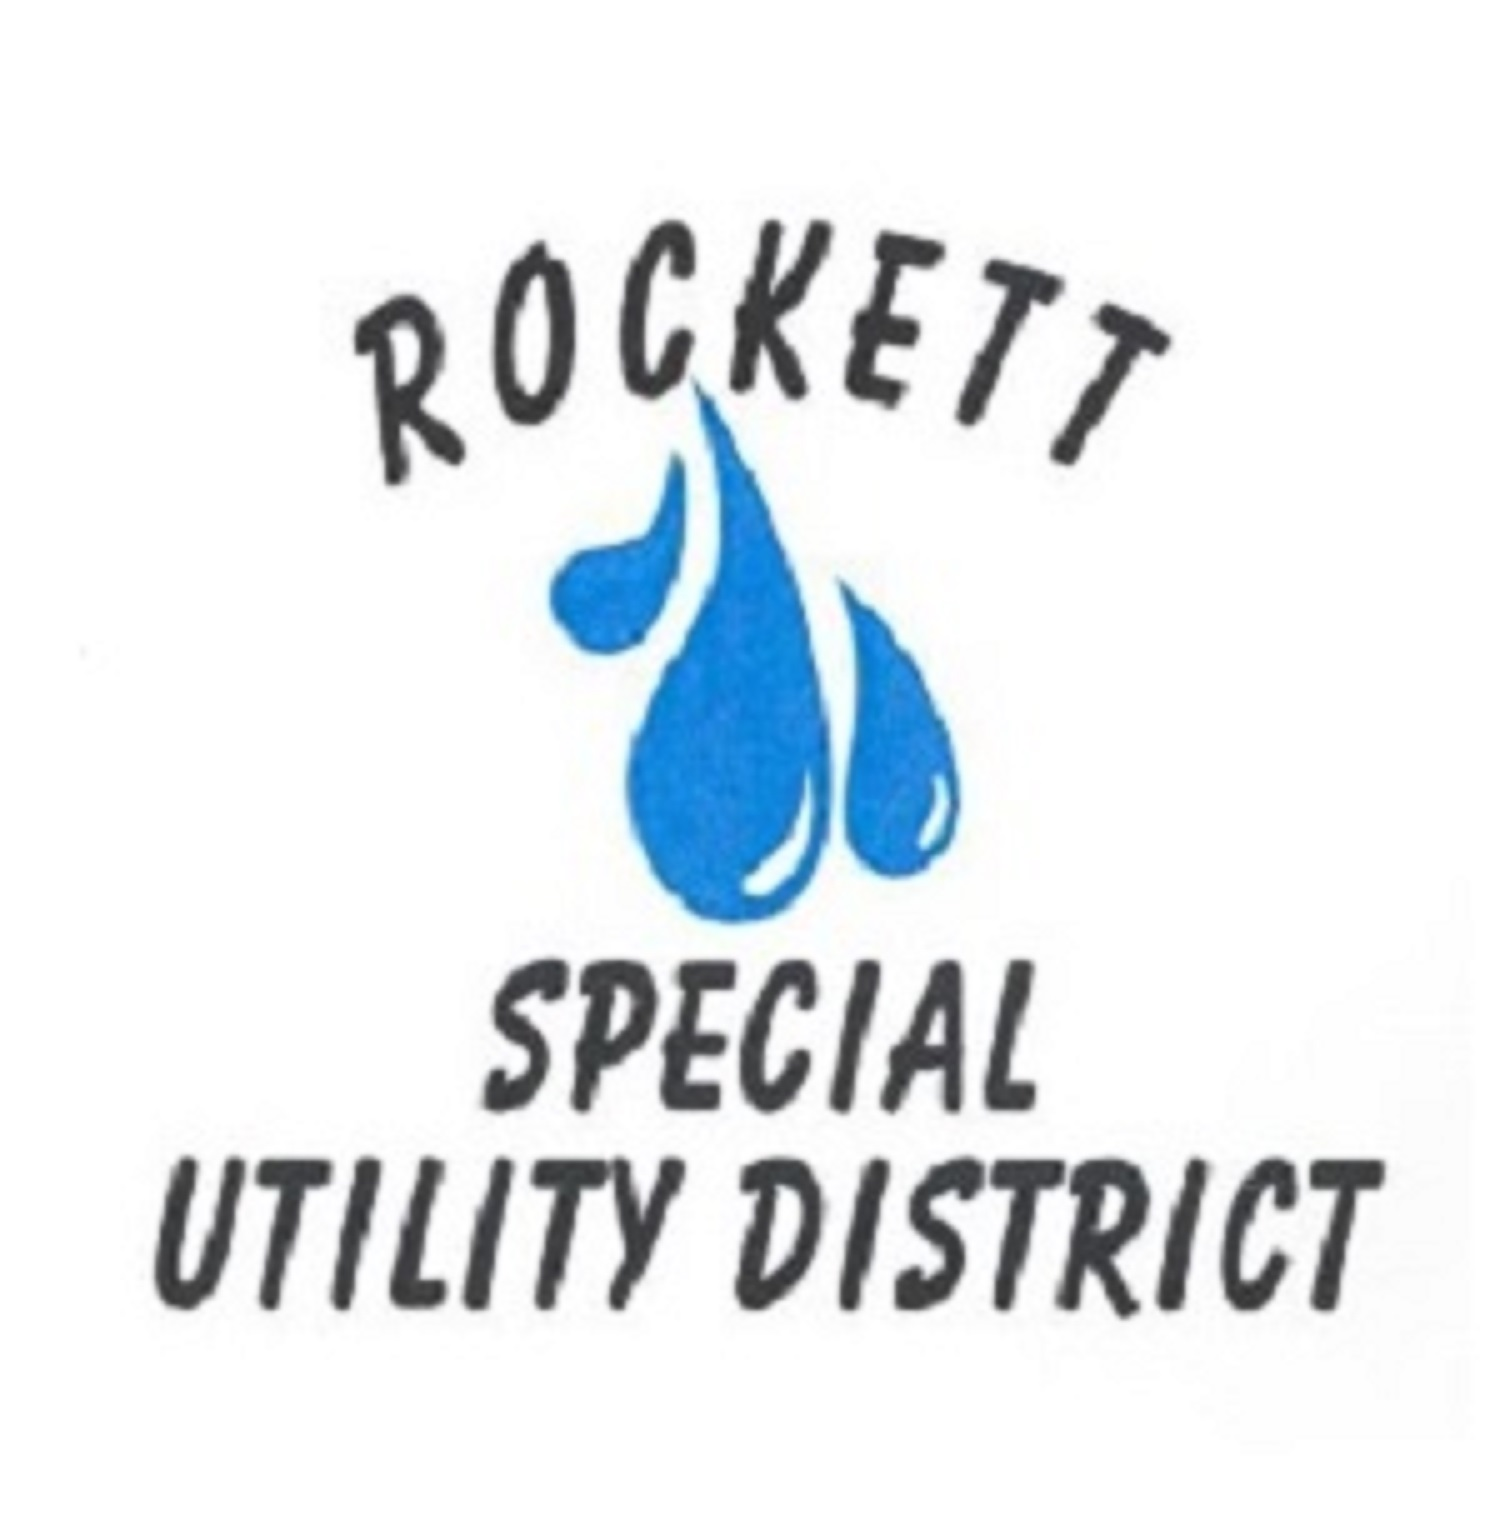 Rockett Special Utility District